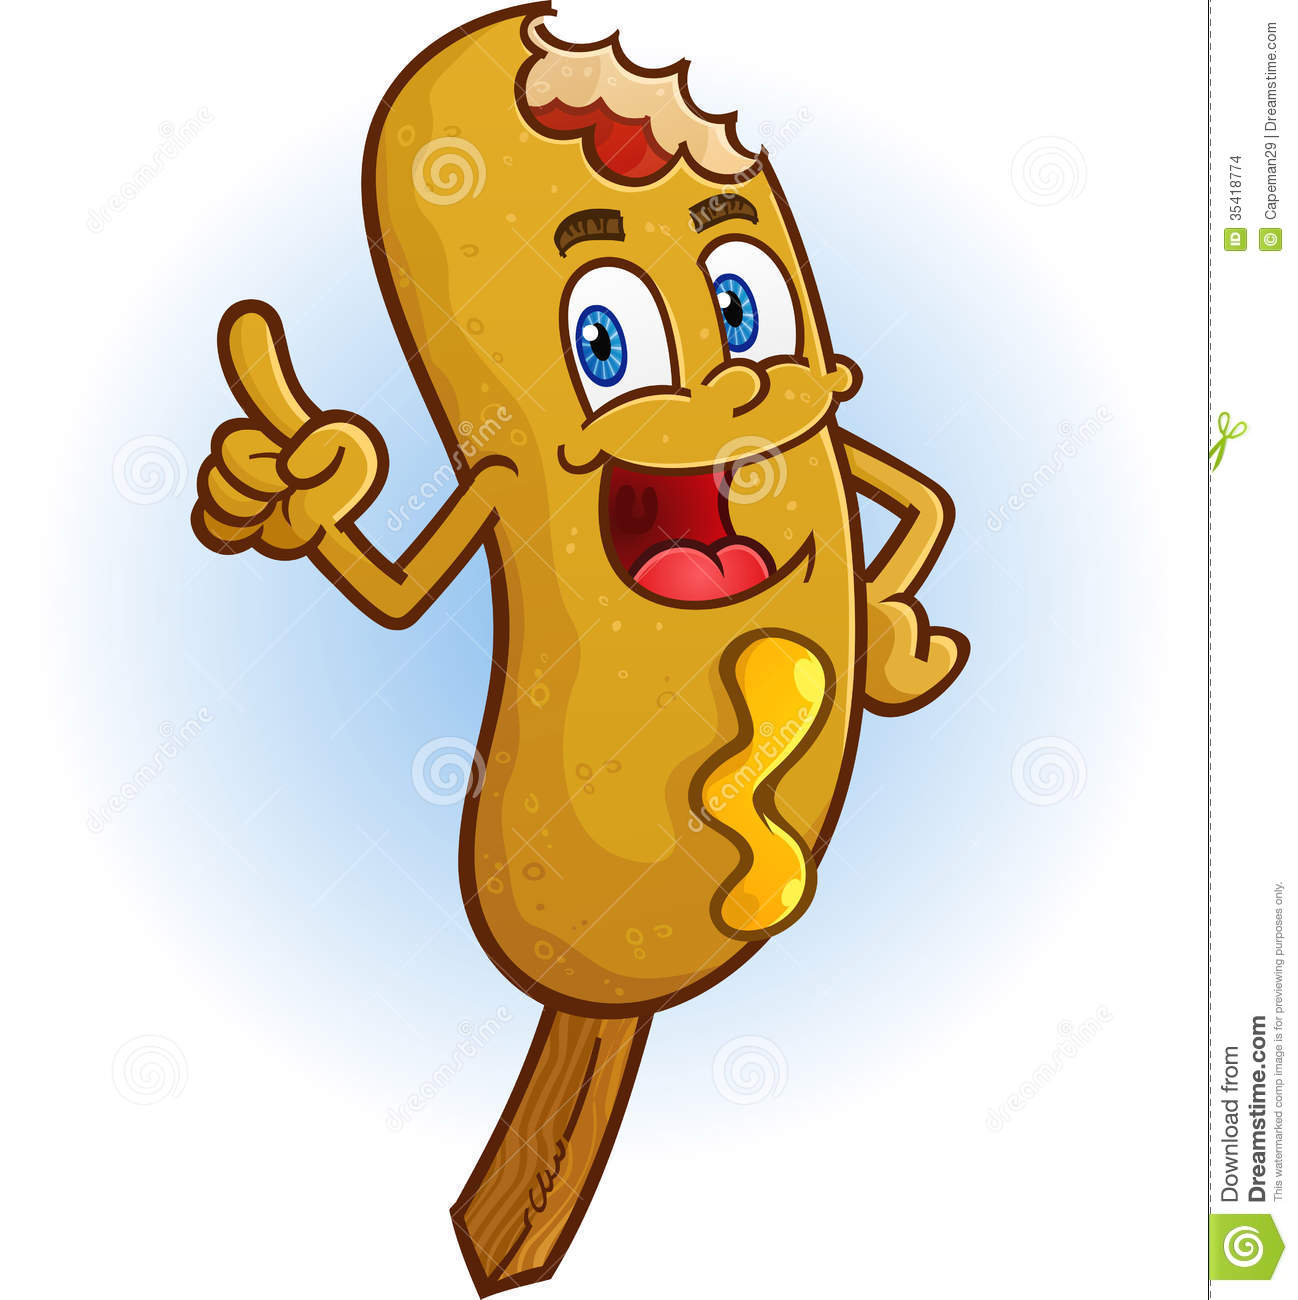 corn dog cartoon character stock vector image of pointing 35418774 Free Clip Art Happy Birthday for Men Happy Birthday Images Free Download